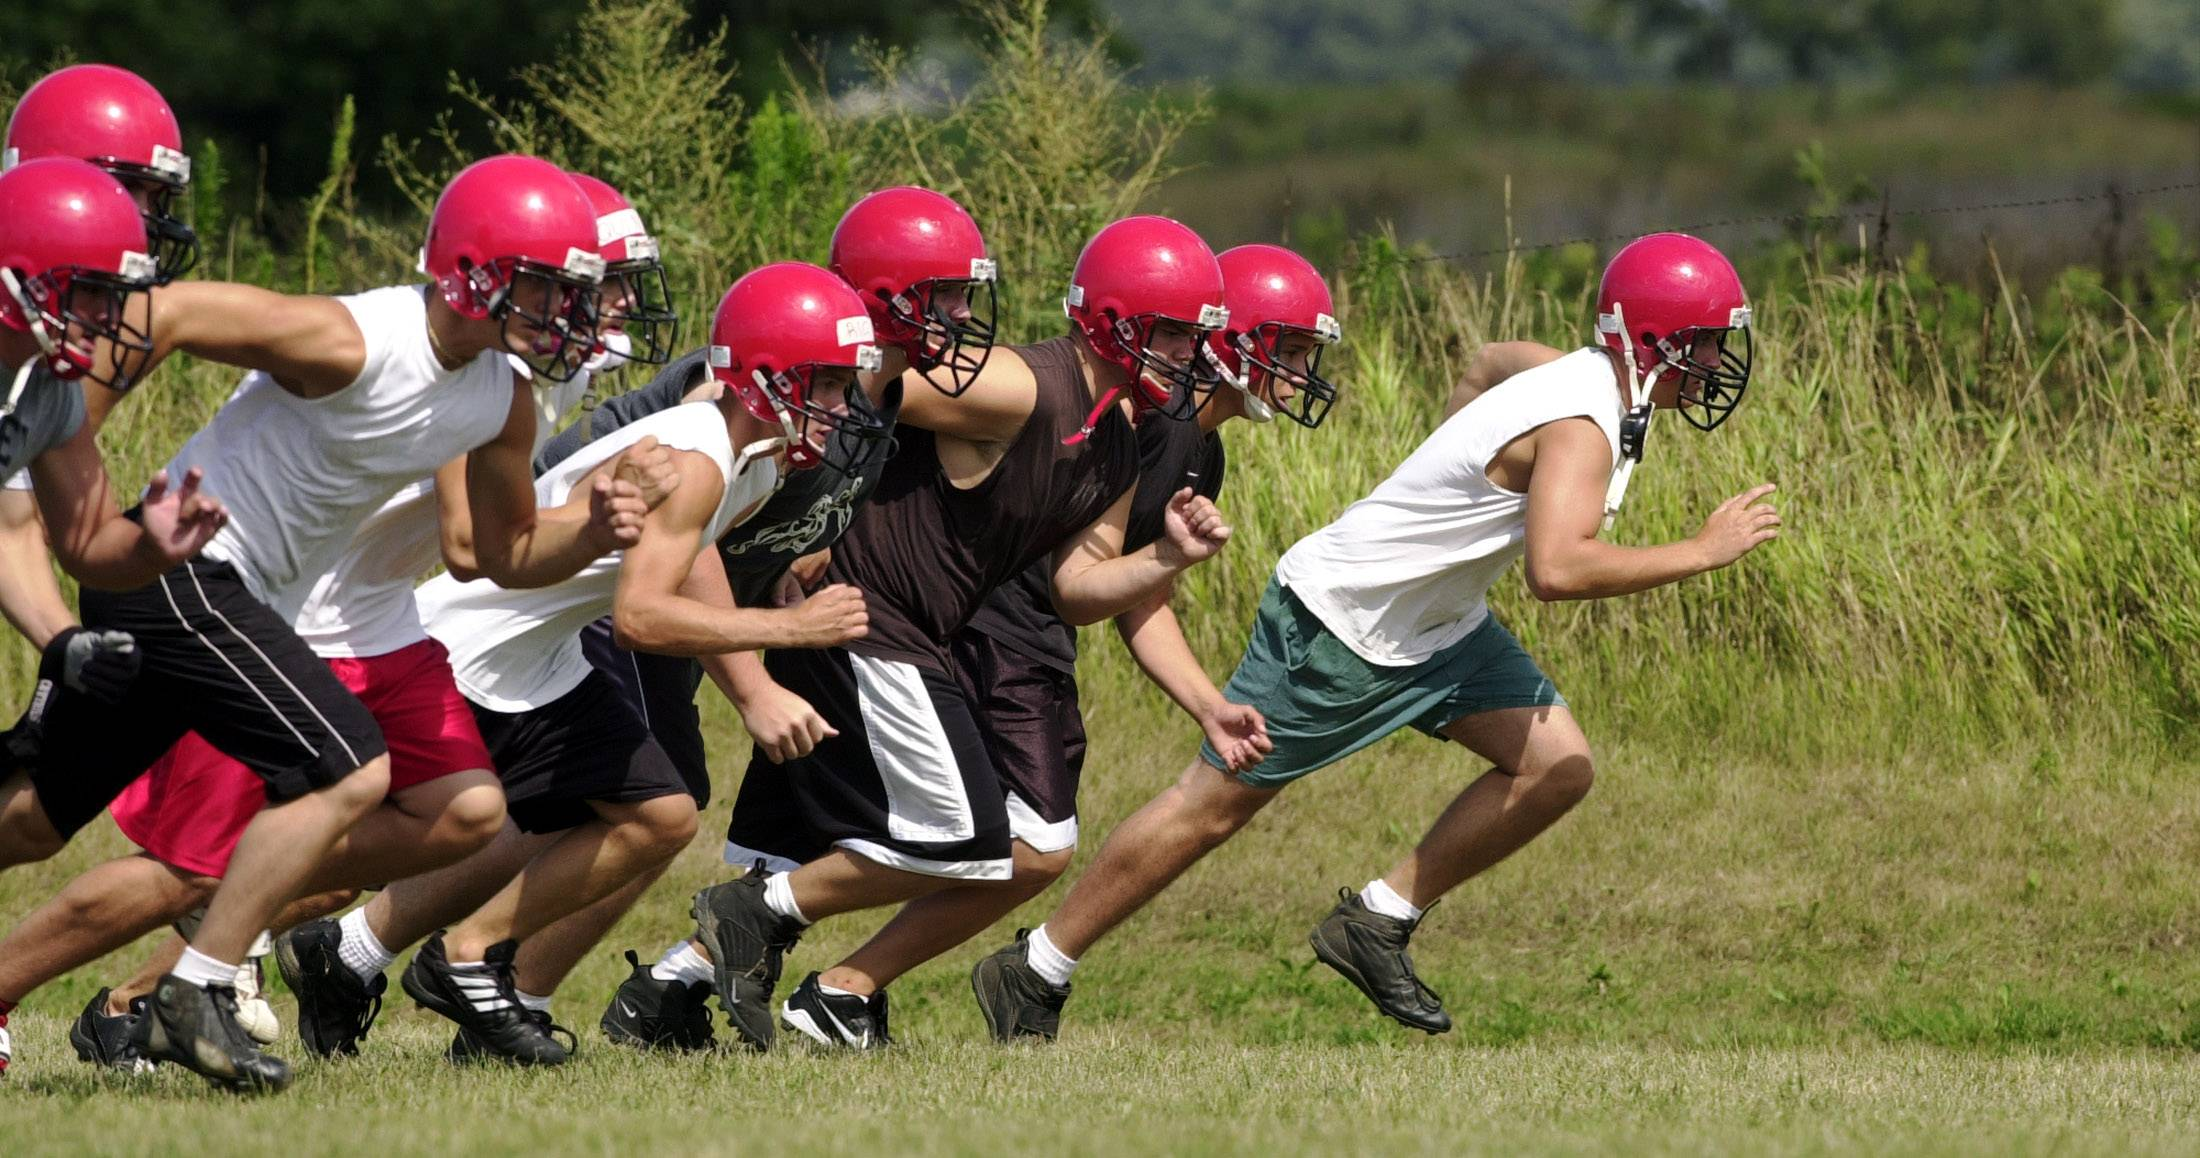 The first day of football practice for suburban high school teams is Aug. 11. But many young athletes play in summer leagues and camps, participate in strengthening and conditioning programs and dedicate themselves to one sport year round. Experts say that leads to injuries and burnout.